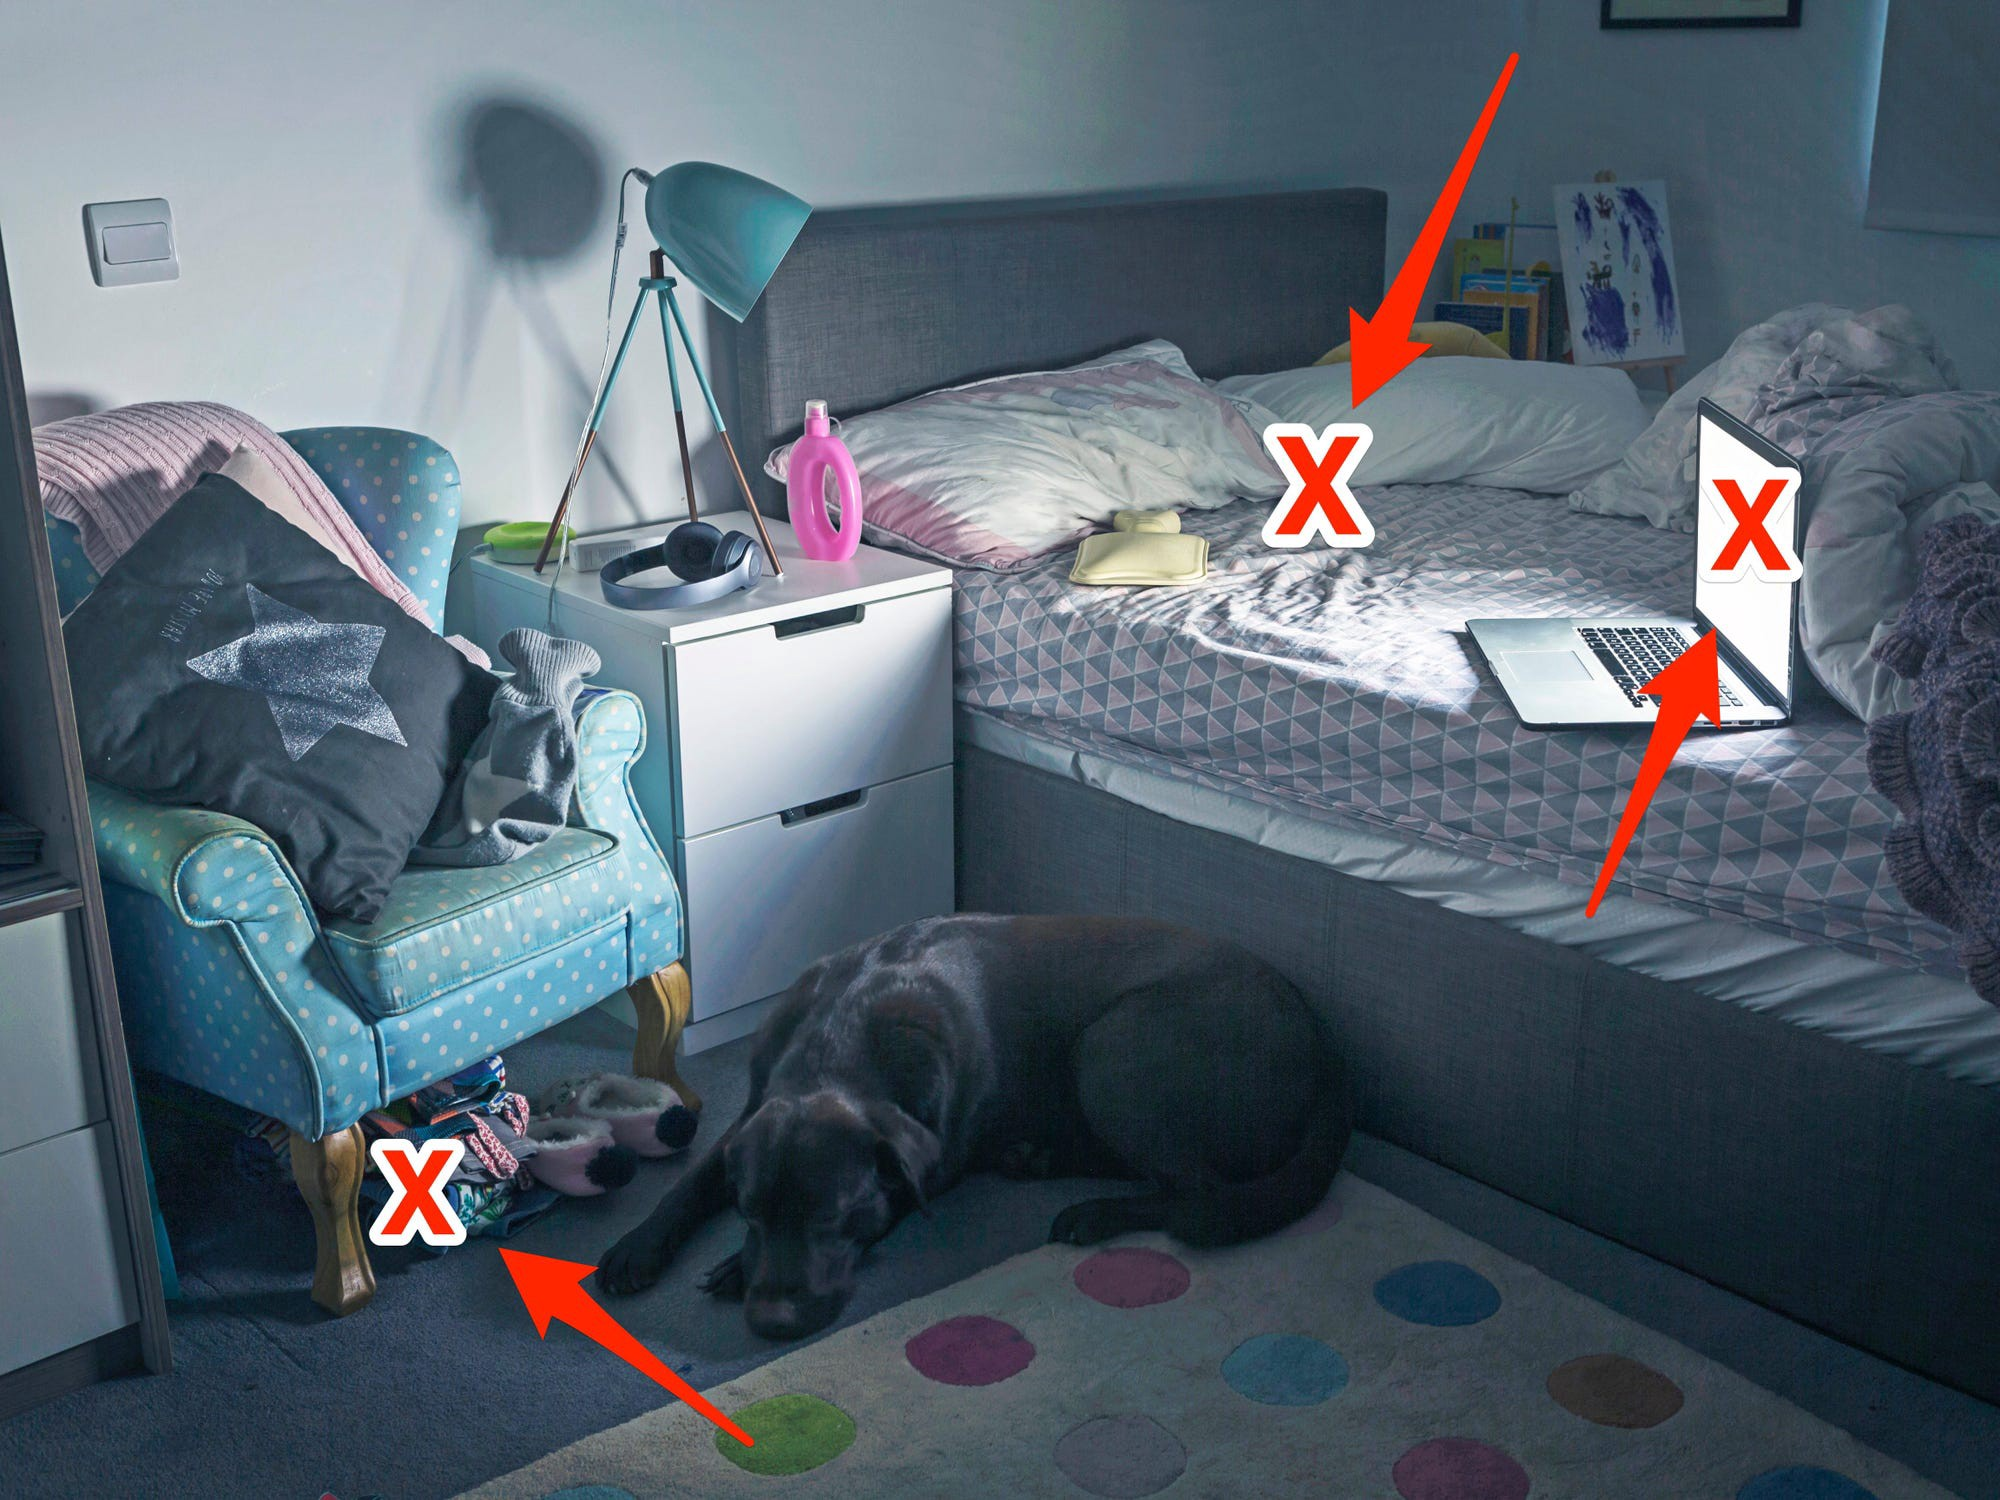 A bedroom with Xs and arrows pointing to an unmade bed, a computer, and clutter.